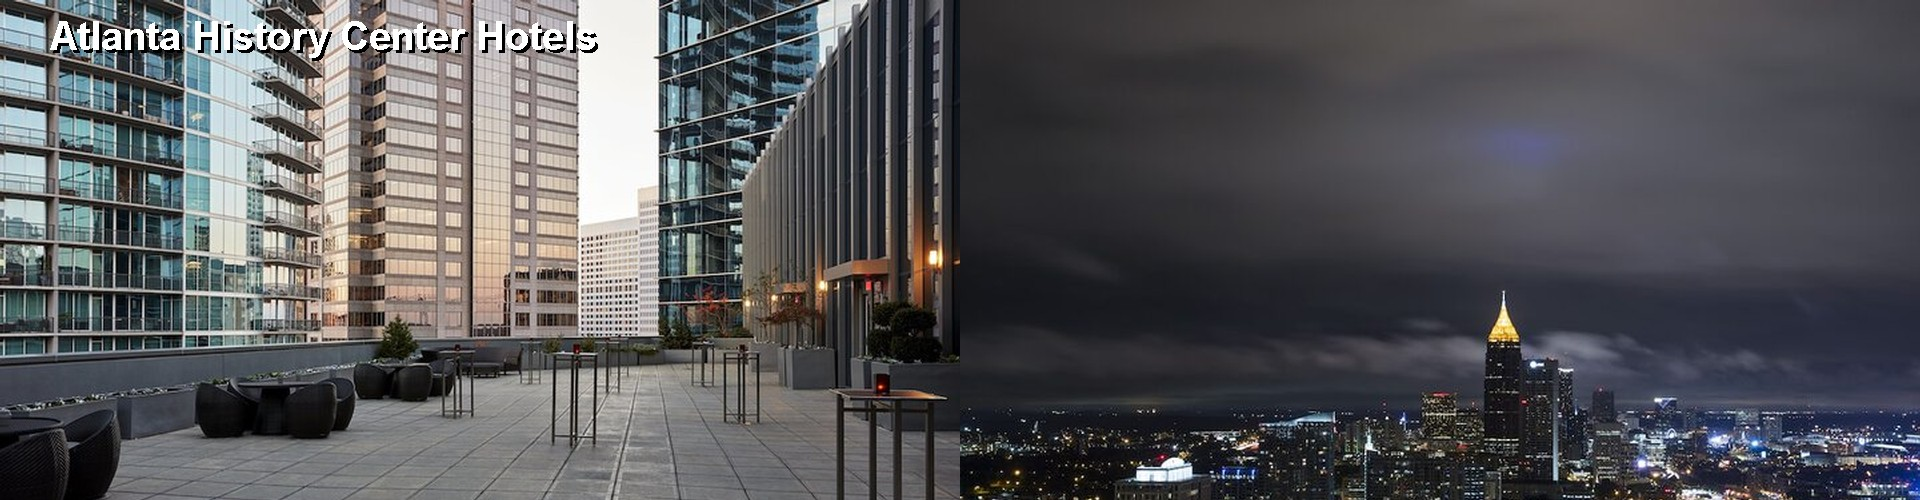 5 Best Hotels near Atlanta History Center